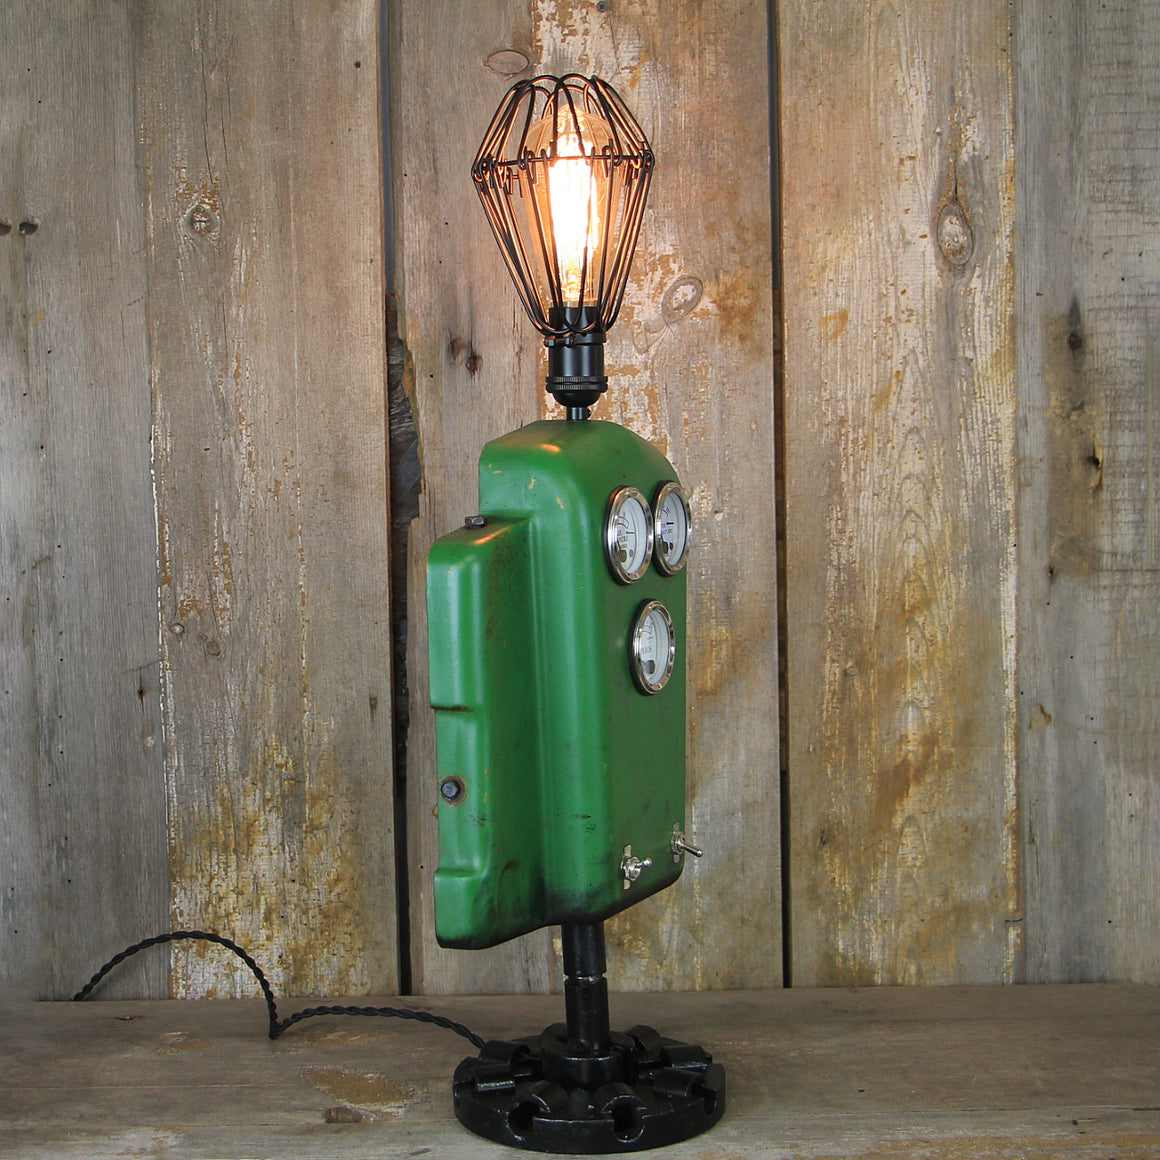 Steampunk Table Lamp made from vintage John Deere parts - Perfect for any Steampunk Decor #1915 - The Lighting Works